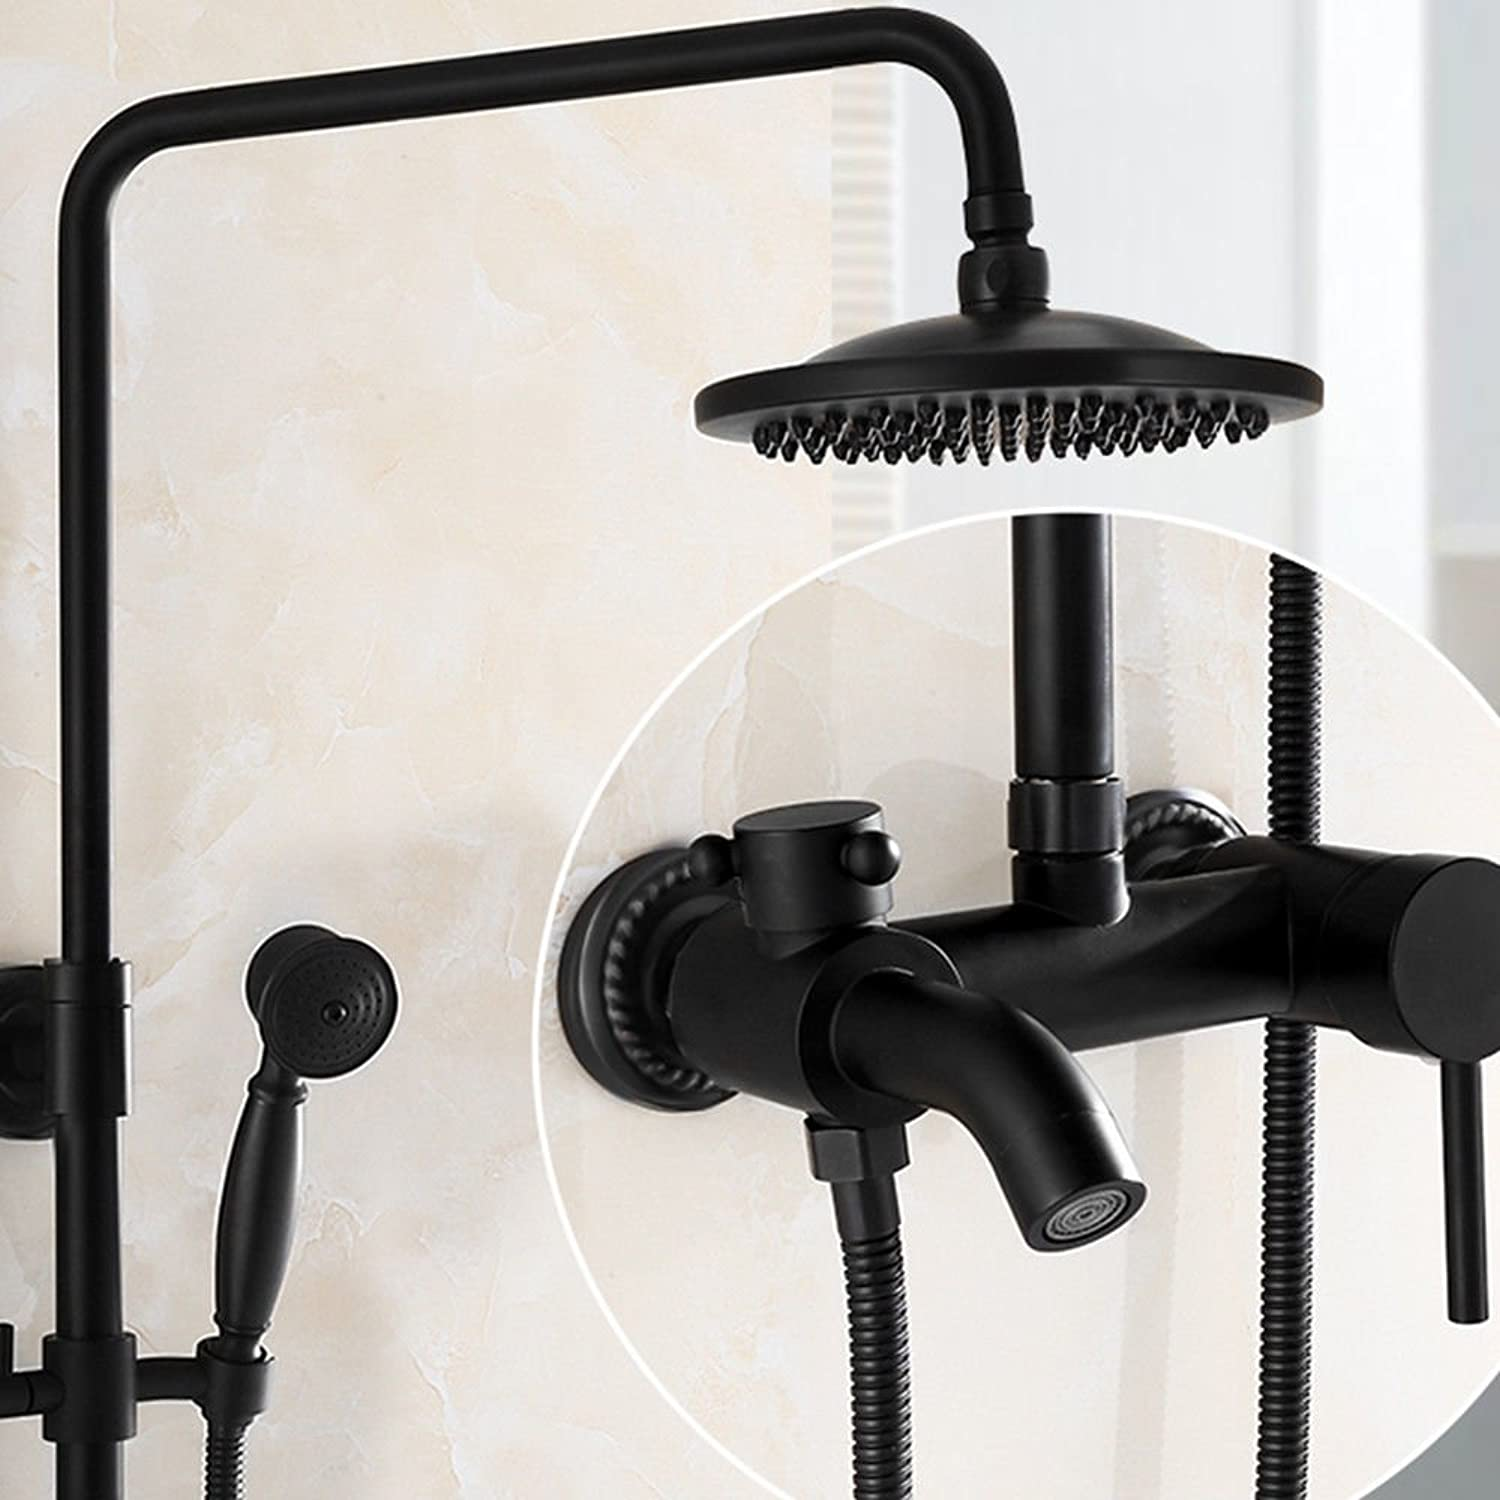 Hlluya Professional Sink Mixer Tap Kitchen Shower Kit black shower kit booster-style brass shower faucets can be redated with lifting showers wall mounted antique thermostatic showers packaged,D3